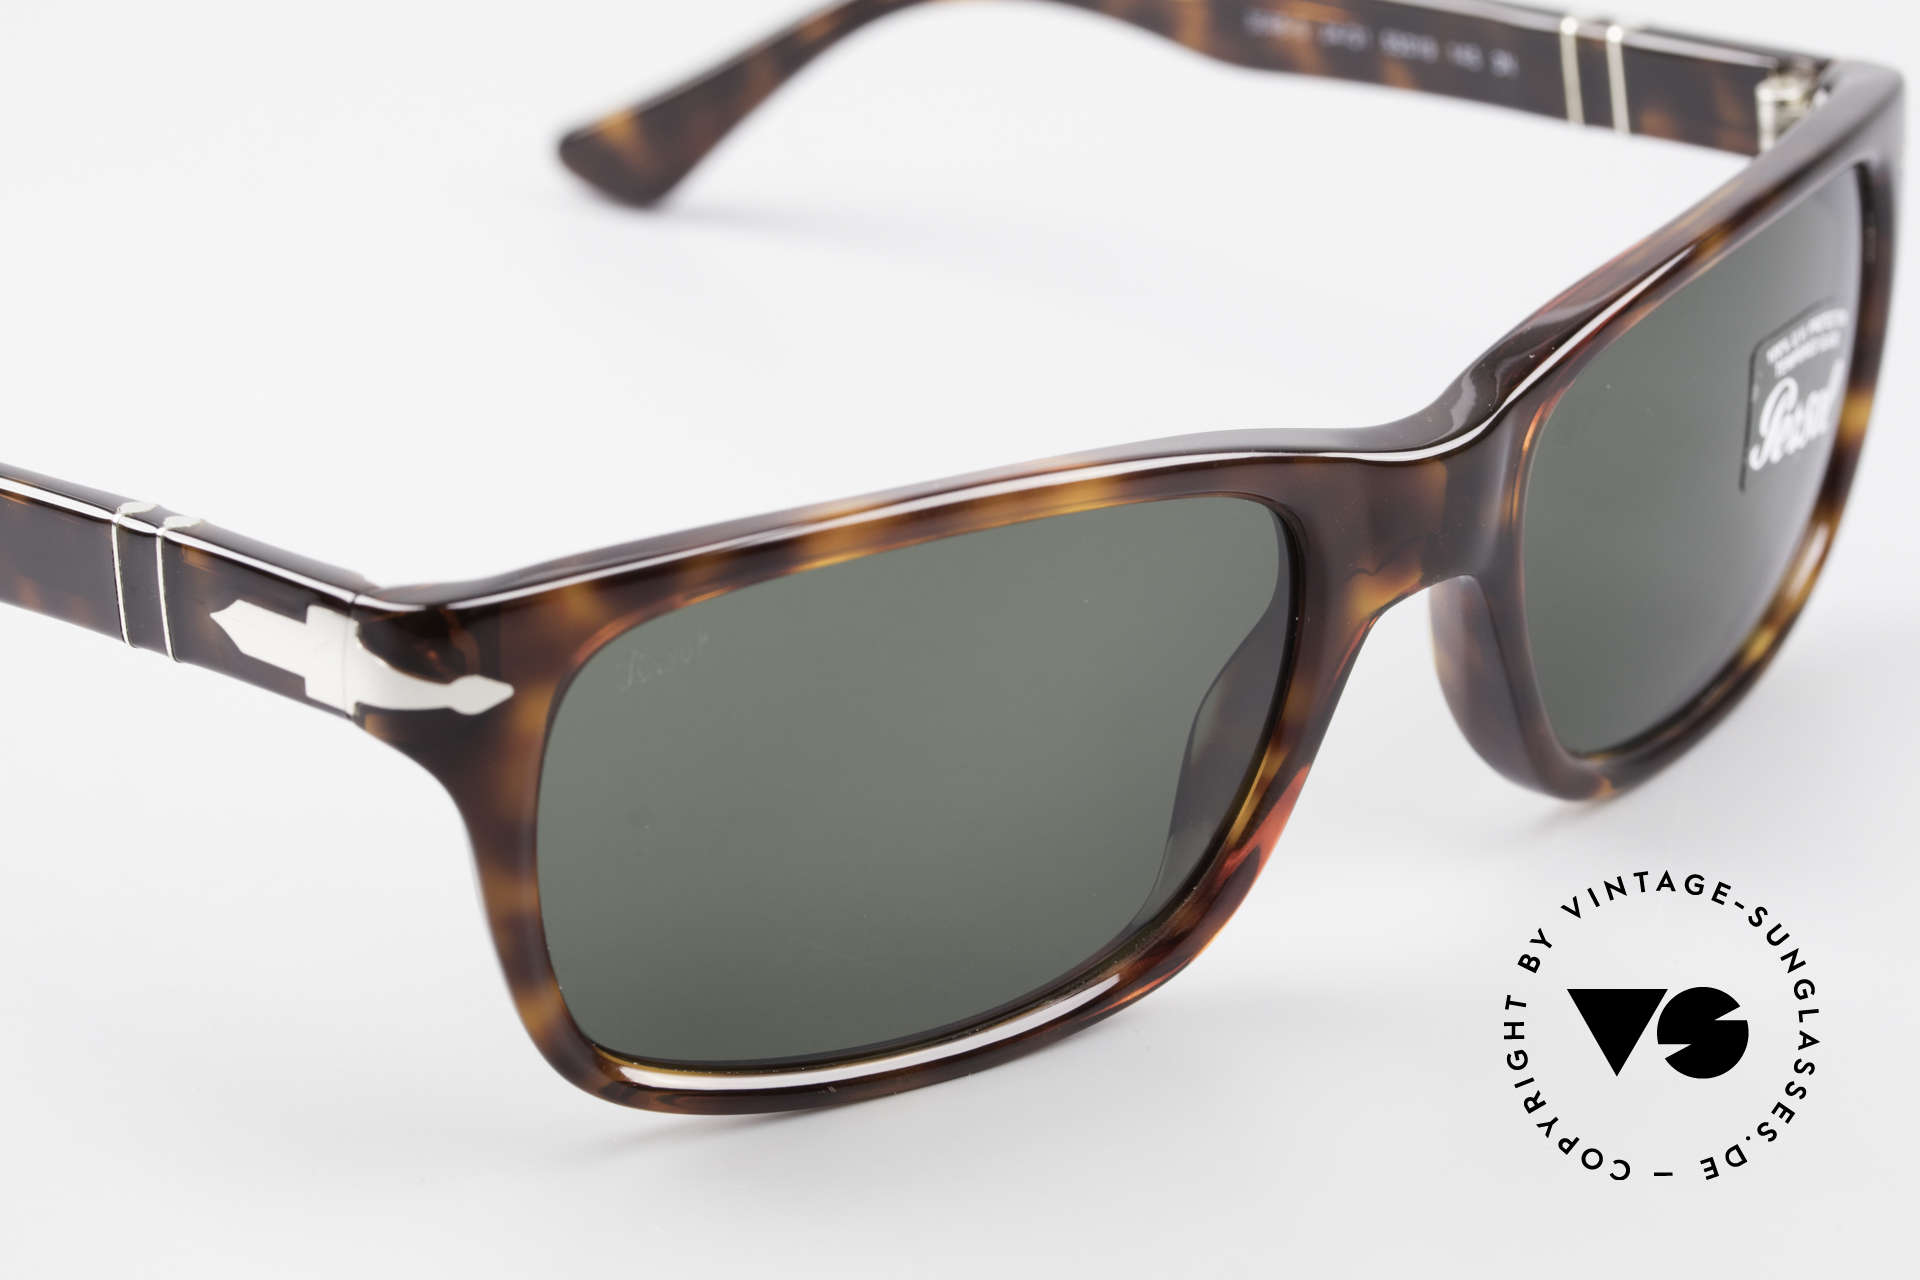 Persol 3048 Timeless Designer Sunglasses, thus, we decided to take it into our vintage collection, Made for Men and Women